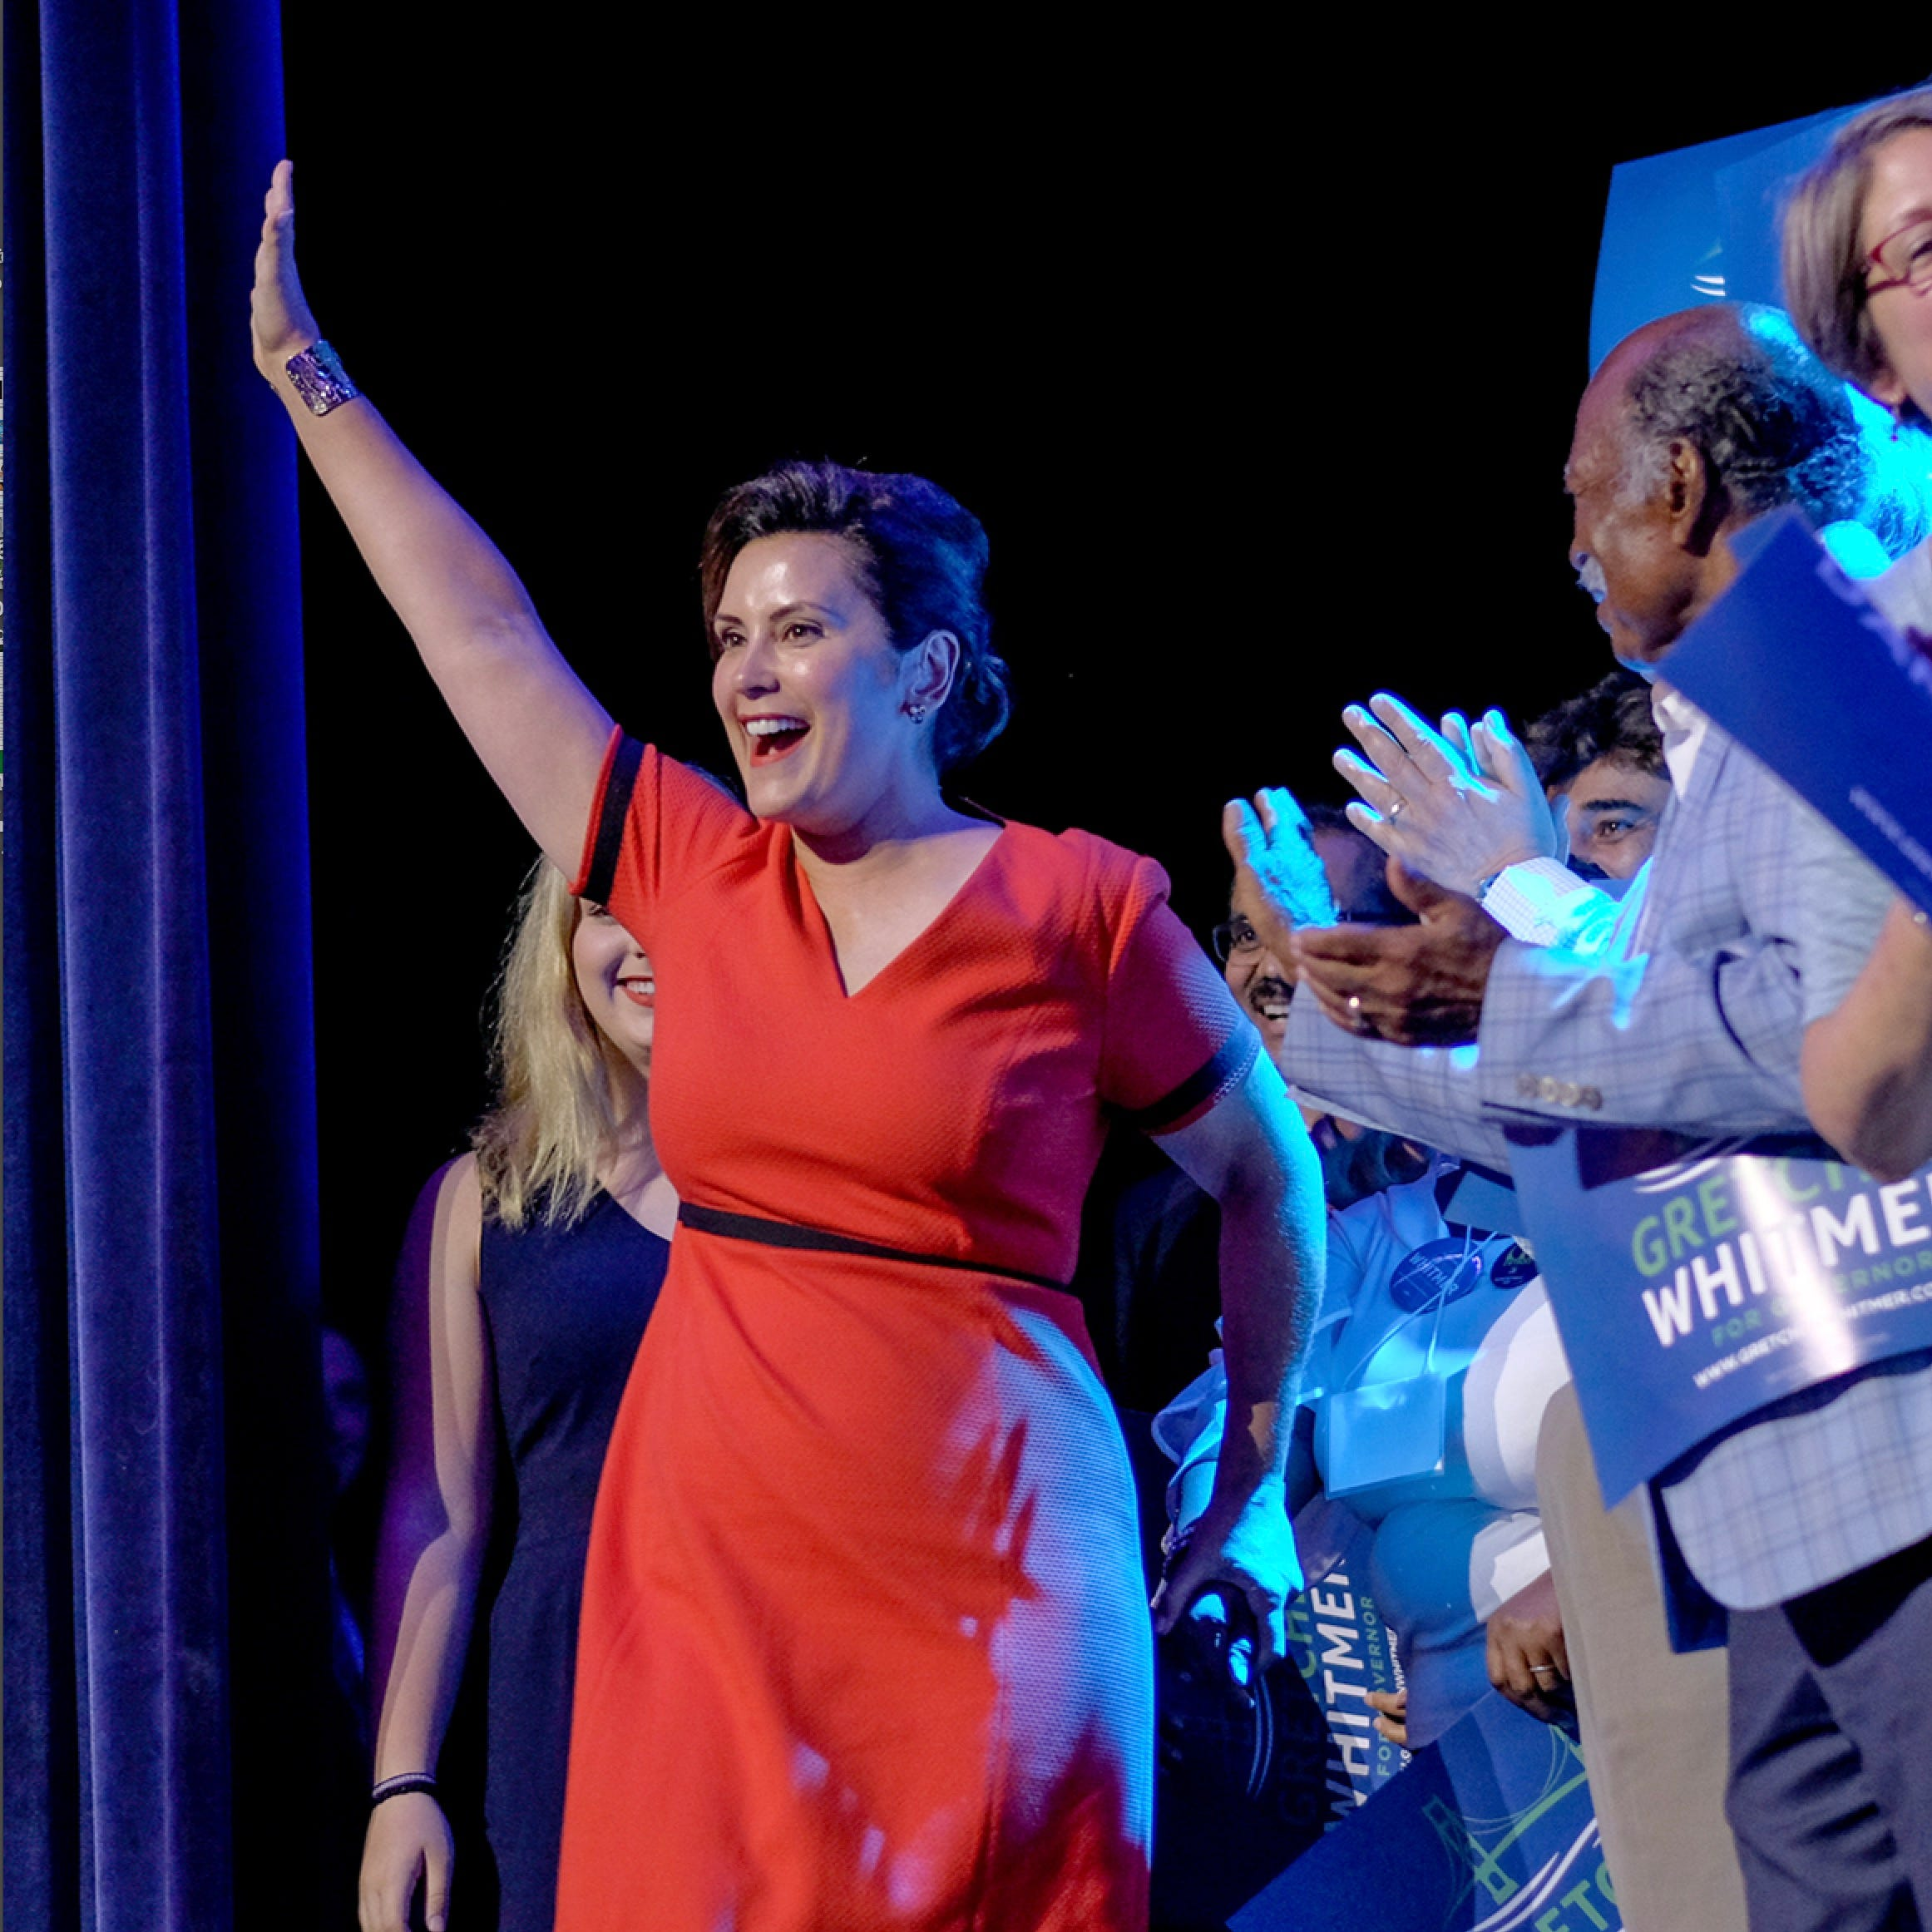 Gretchen Whitmer must ignore Democratic Party, make her own decisions